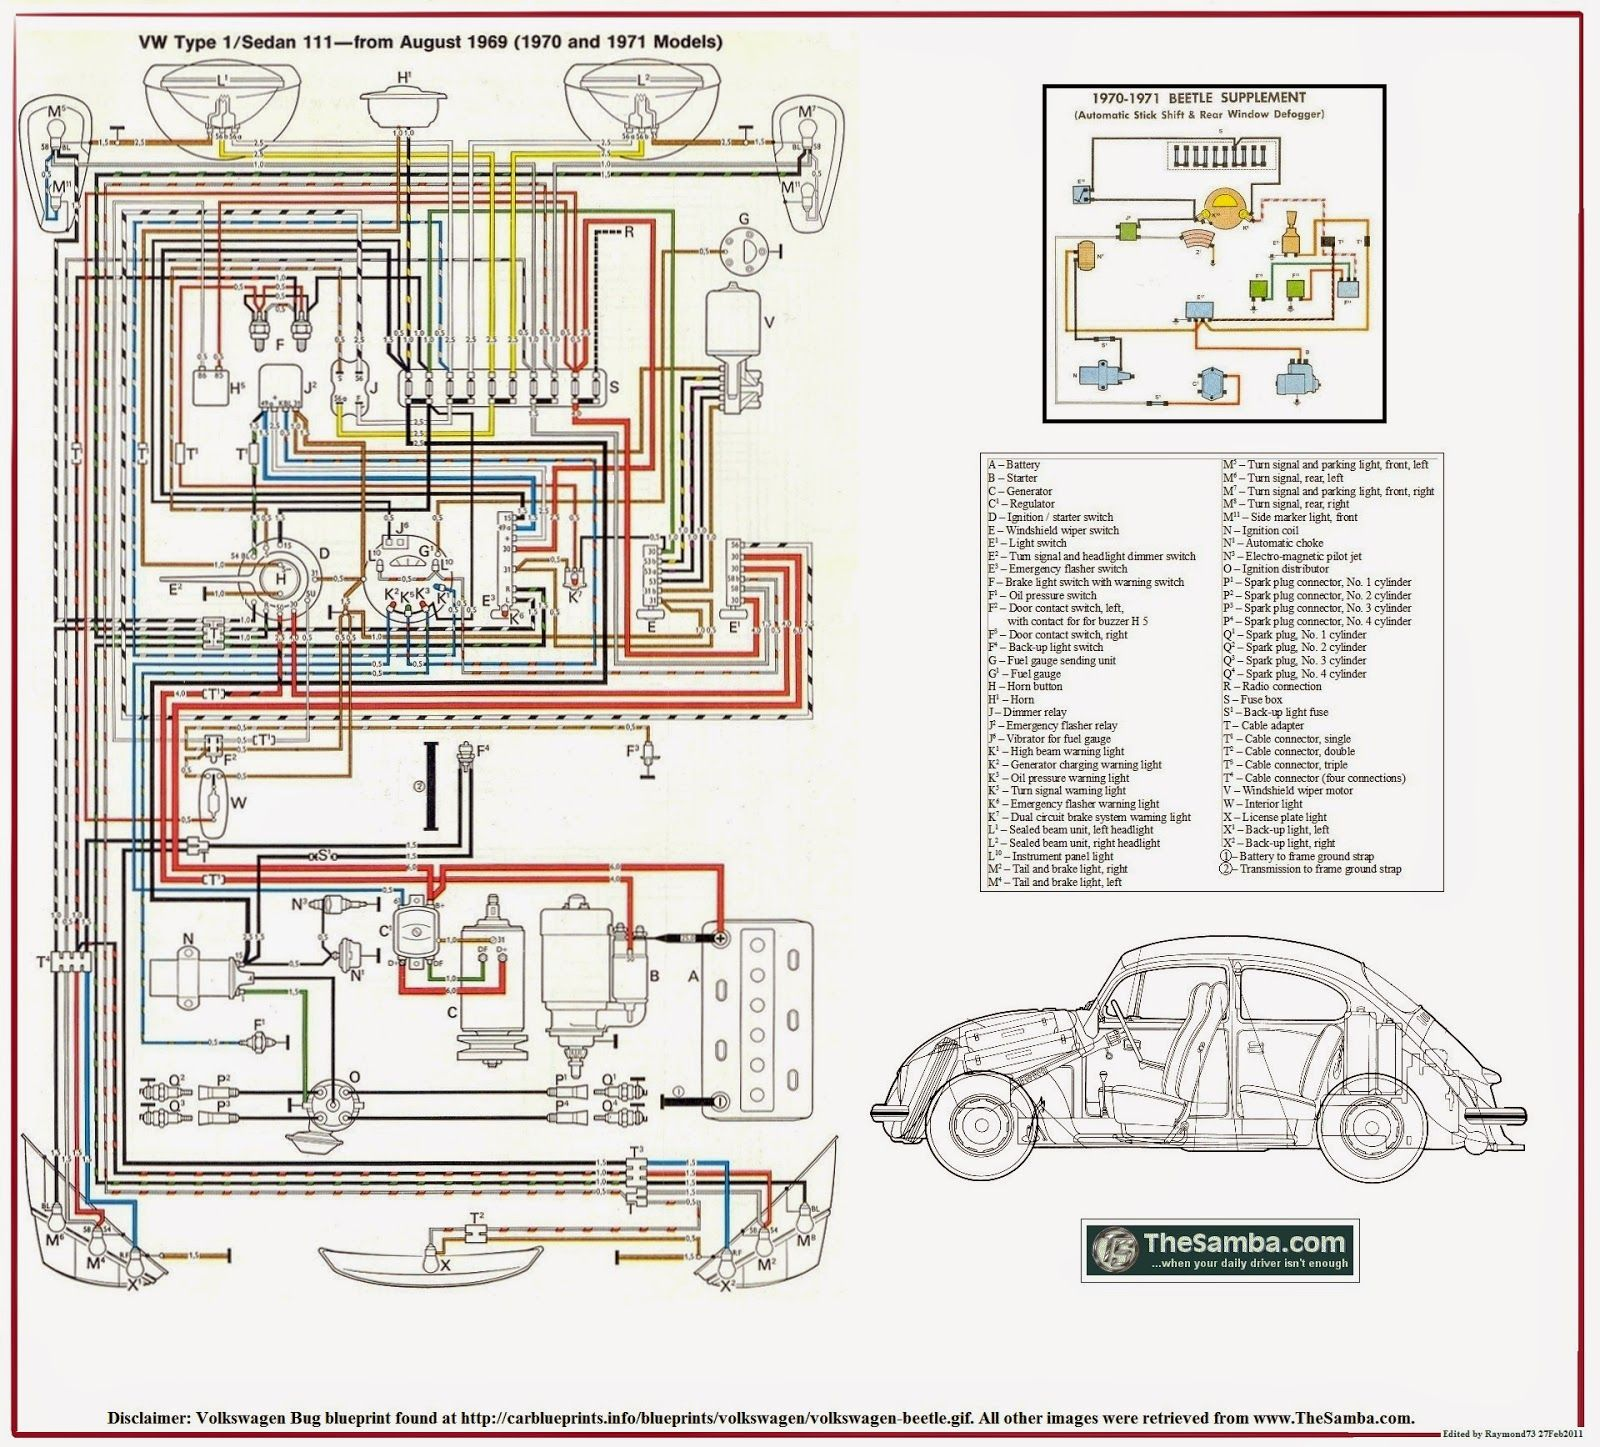 c42f7e50c6cd2df691326f8c1e5c6e97 urbi et orbi my bucket list journals volkswagen (vw) beetle 1970 vw beetle wiring diagram at panicattacktreatment.co